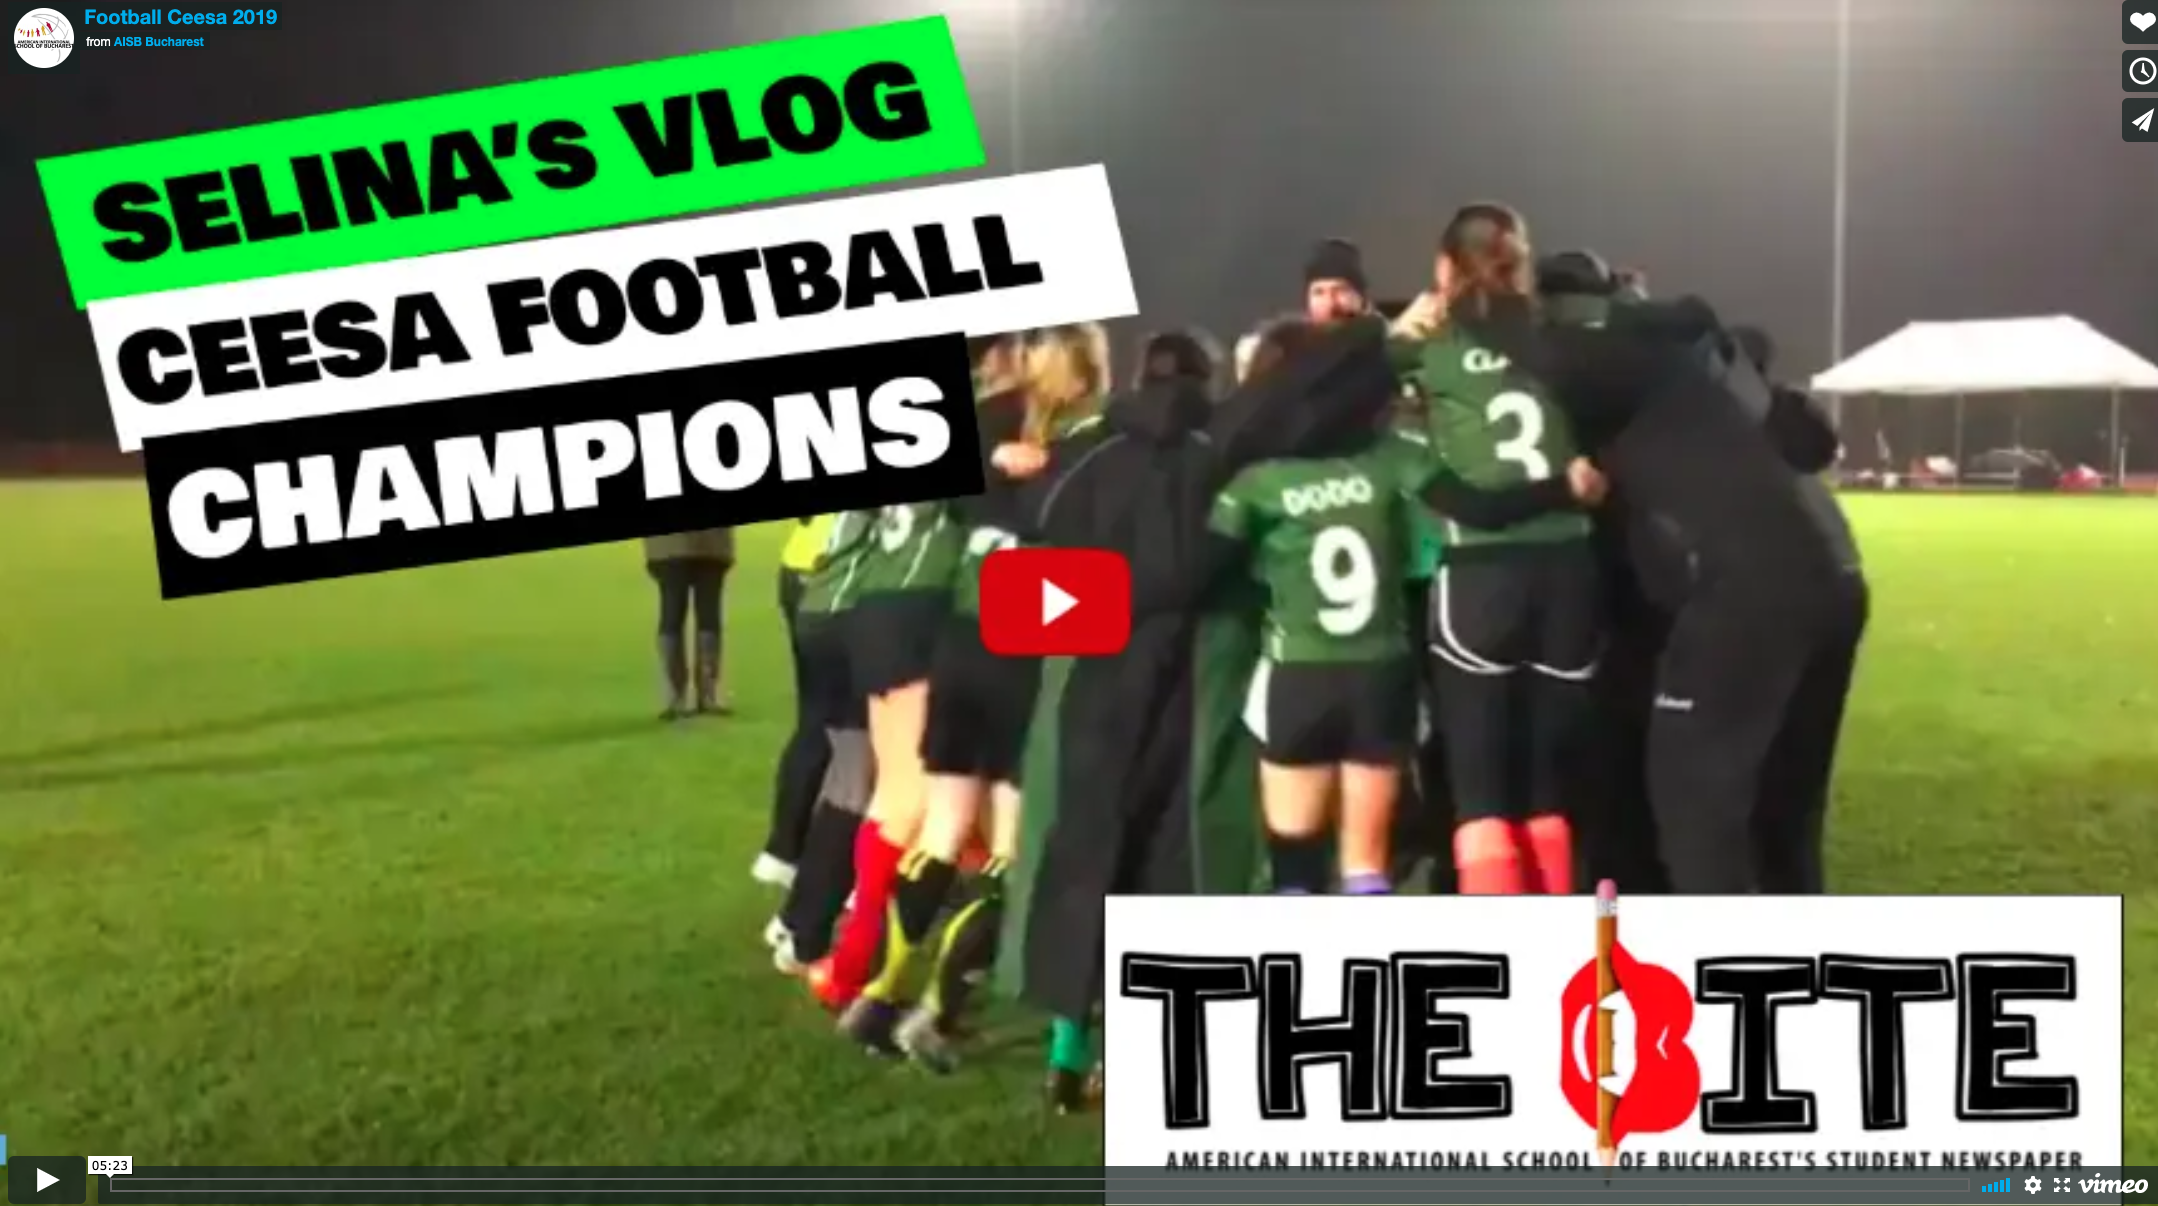 Watch: Vlog Coverage from Varsity Girls' Football Trip to Budapest